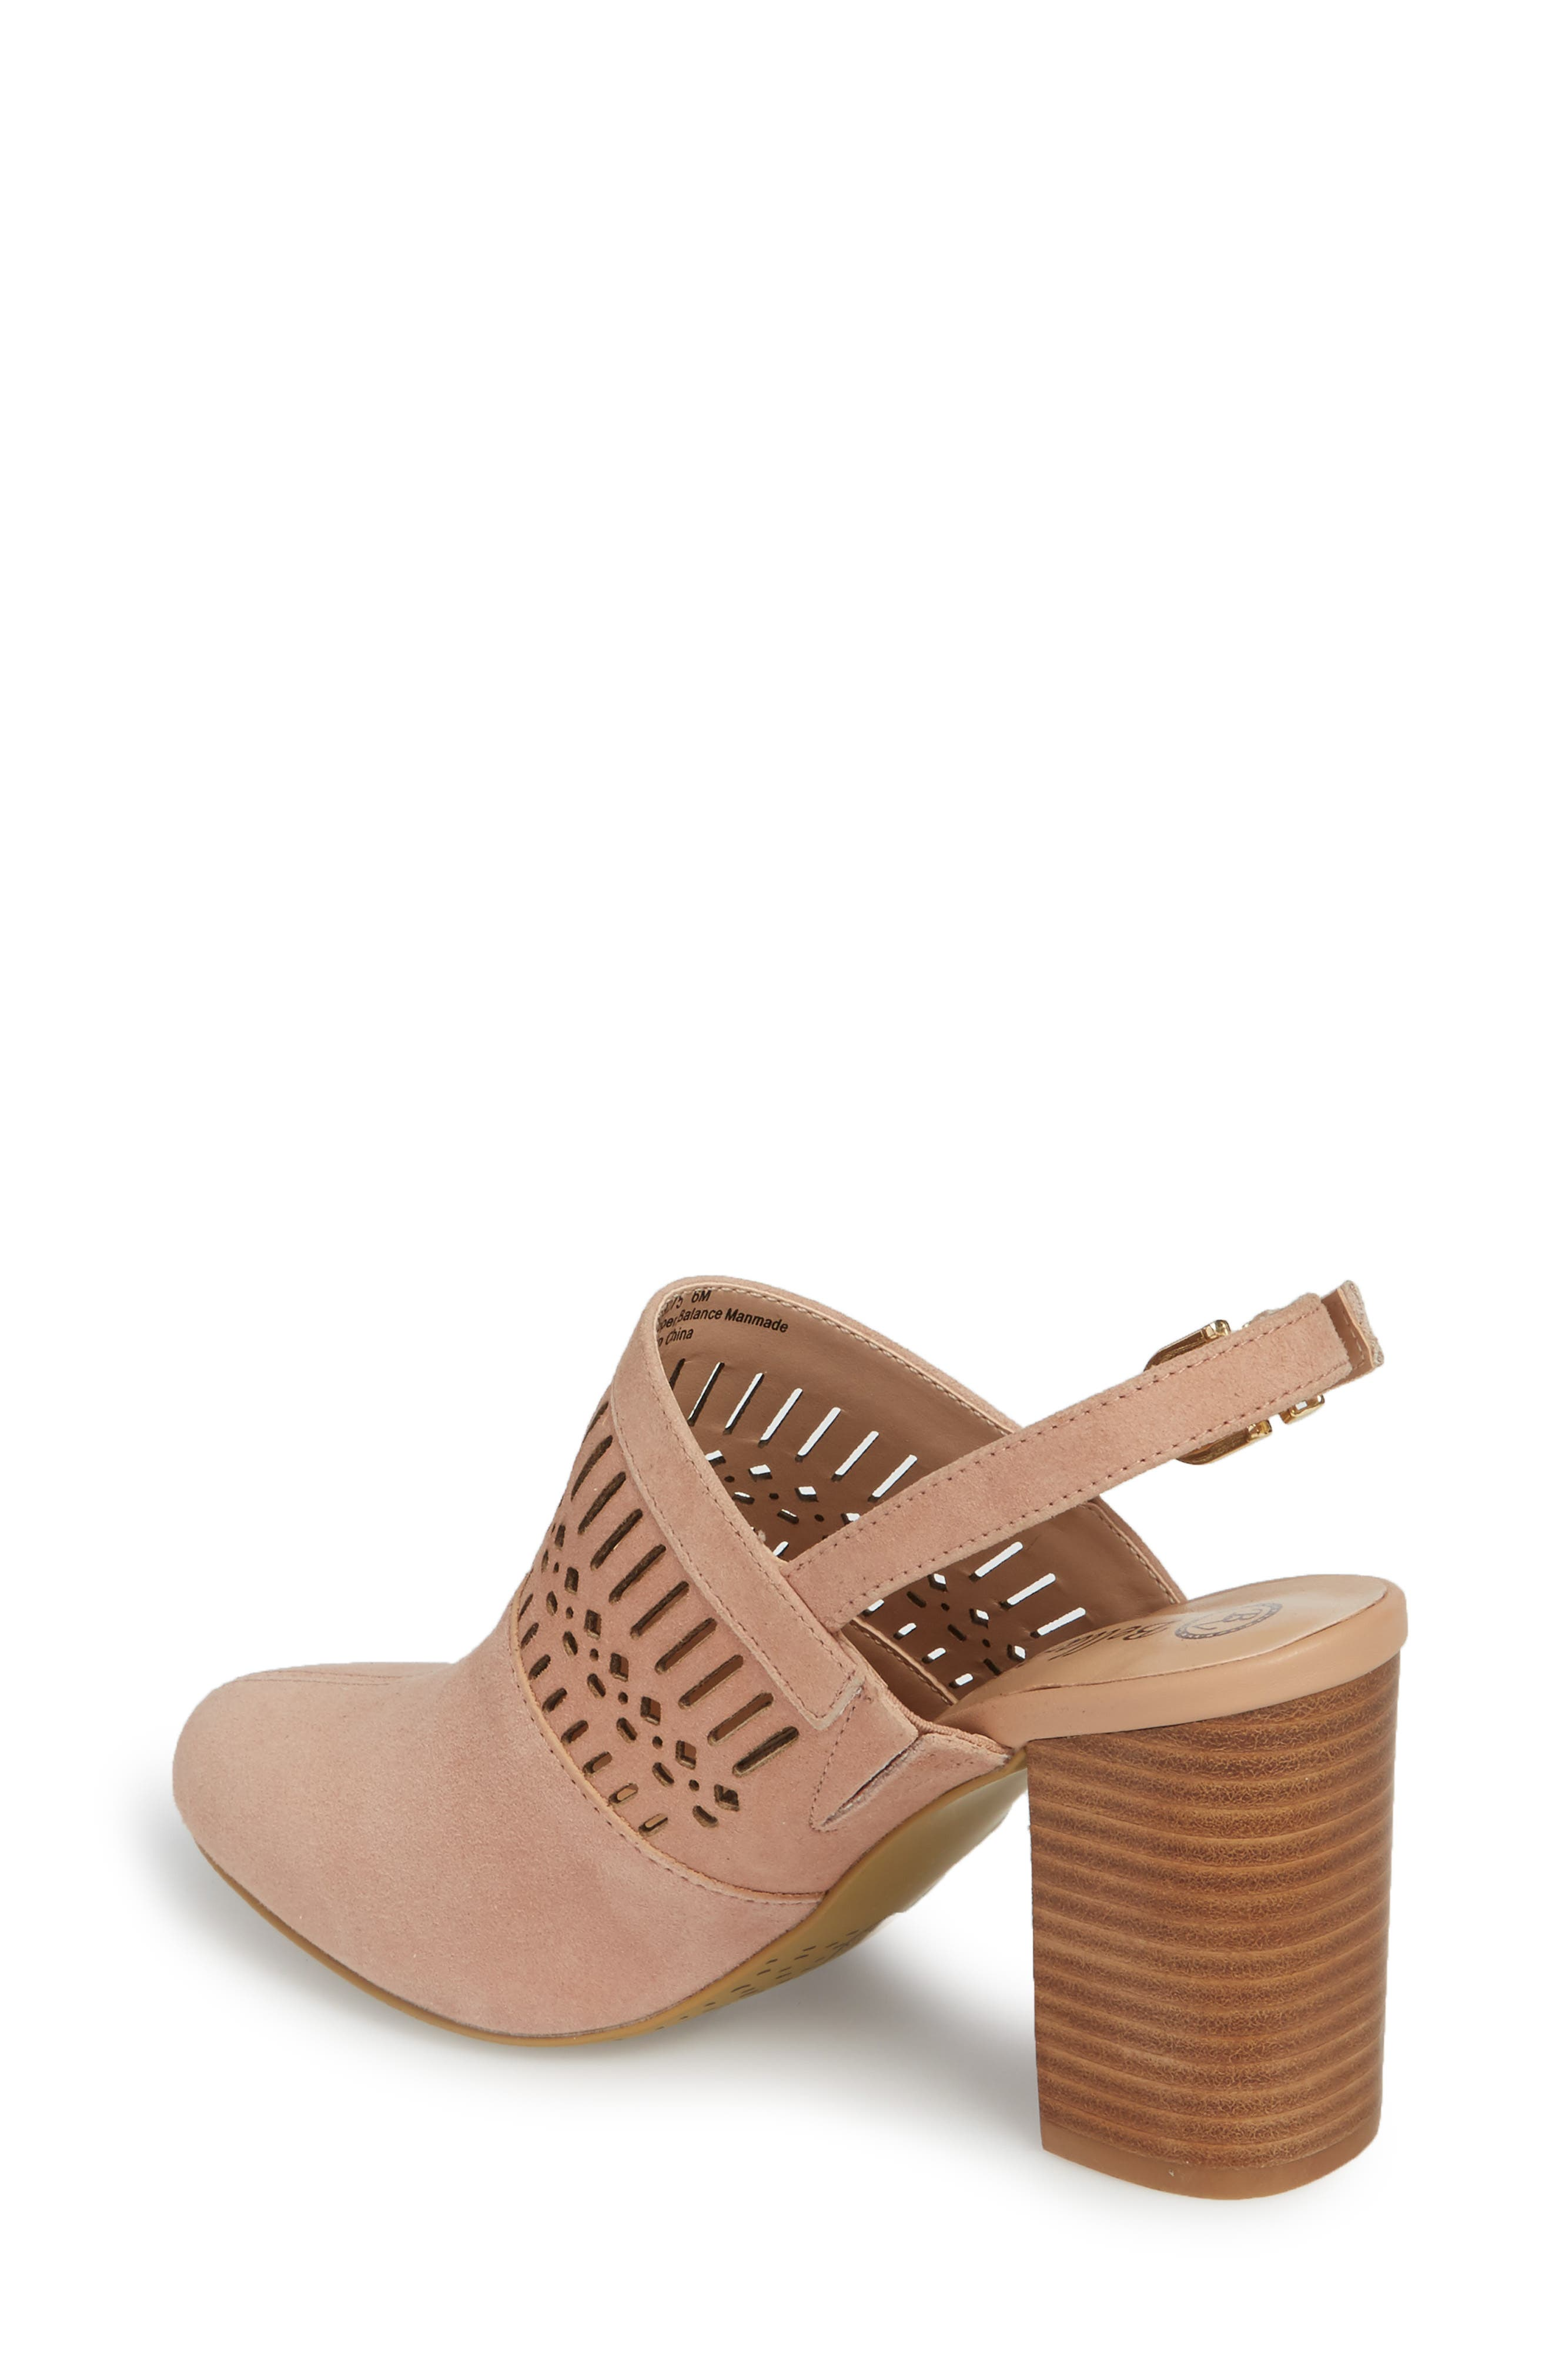 Nox Slingback Perforated Pump,                             Alternate thumbnail 2, color,                             Blush Suede